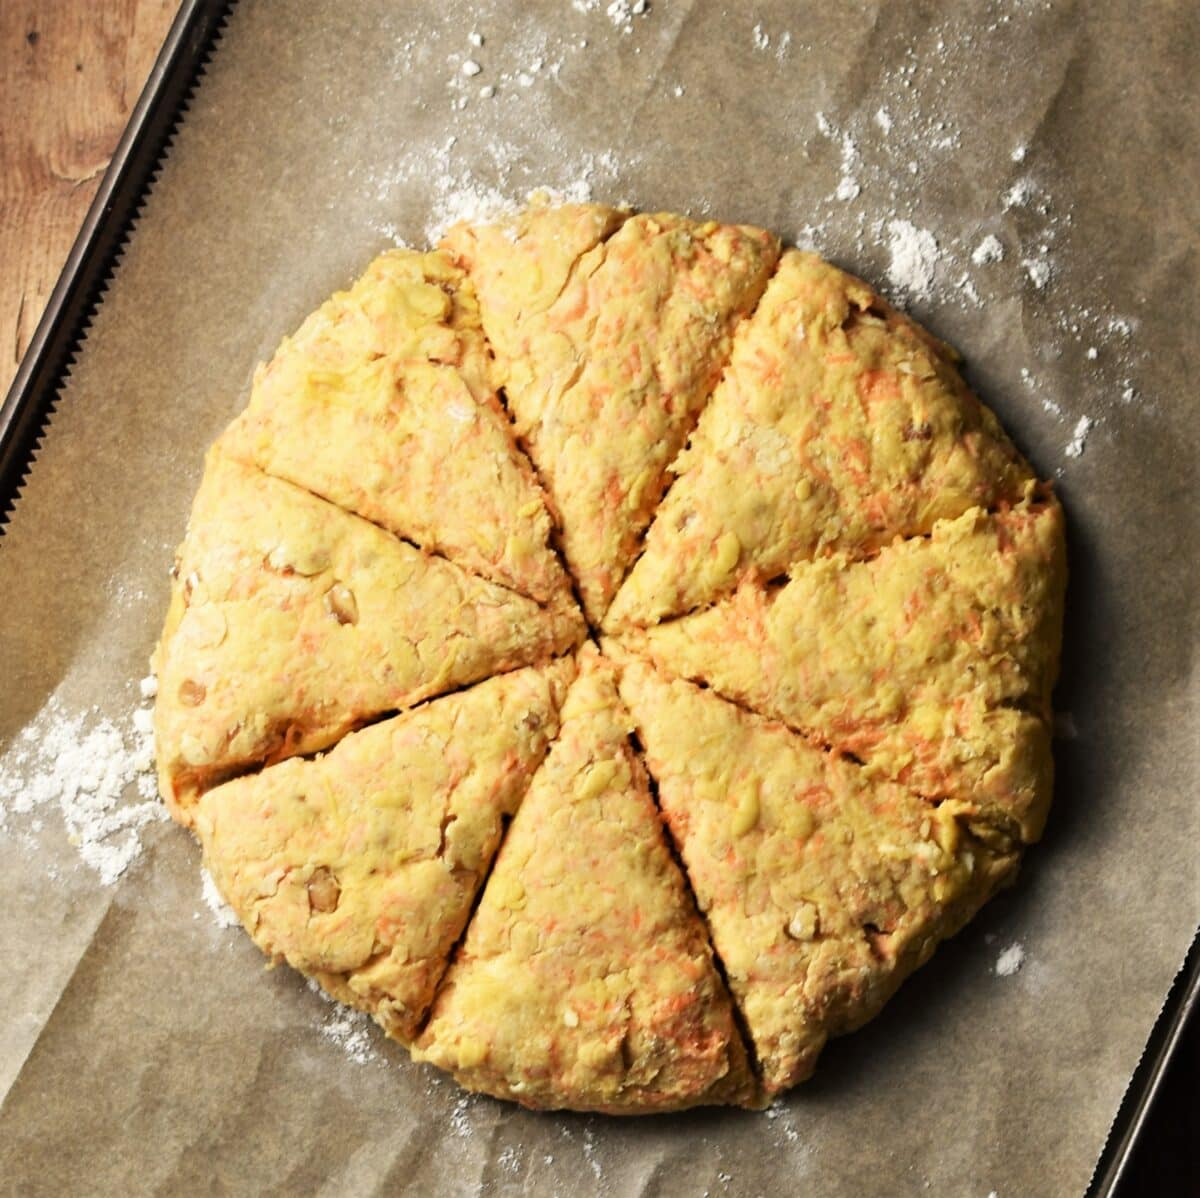 Carrot scones dough flattened and cut into 6 triangles on top of parchment paper.